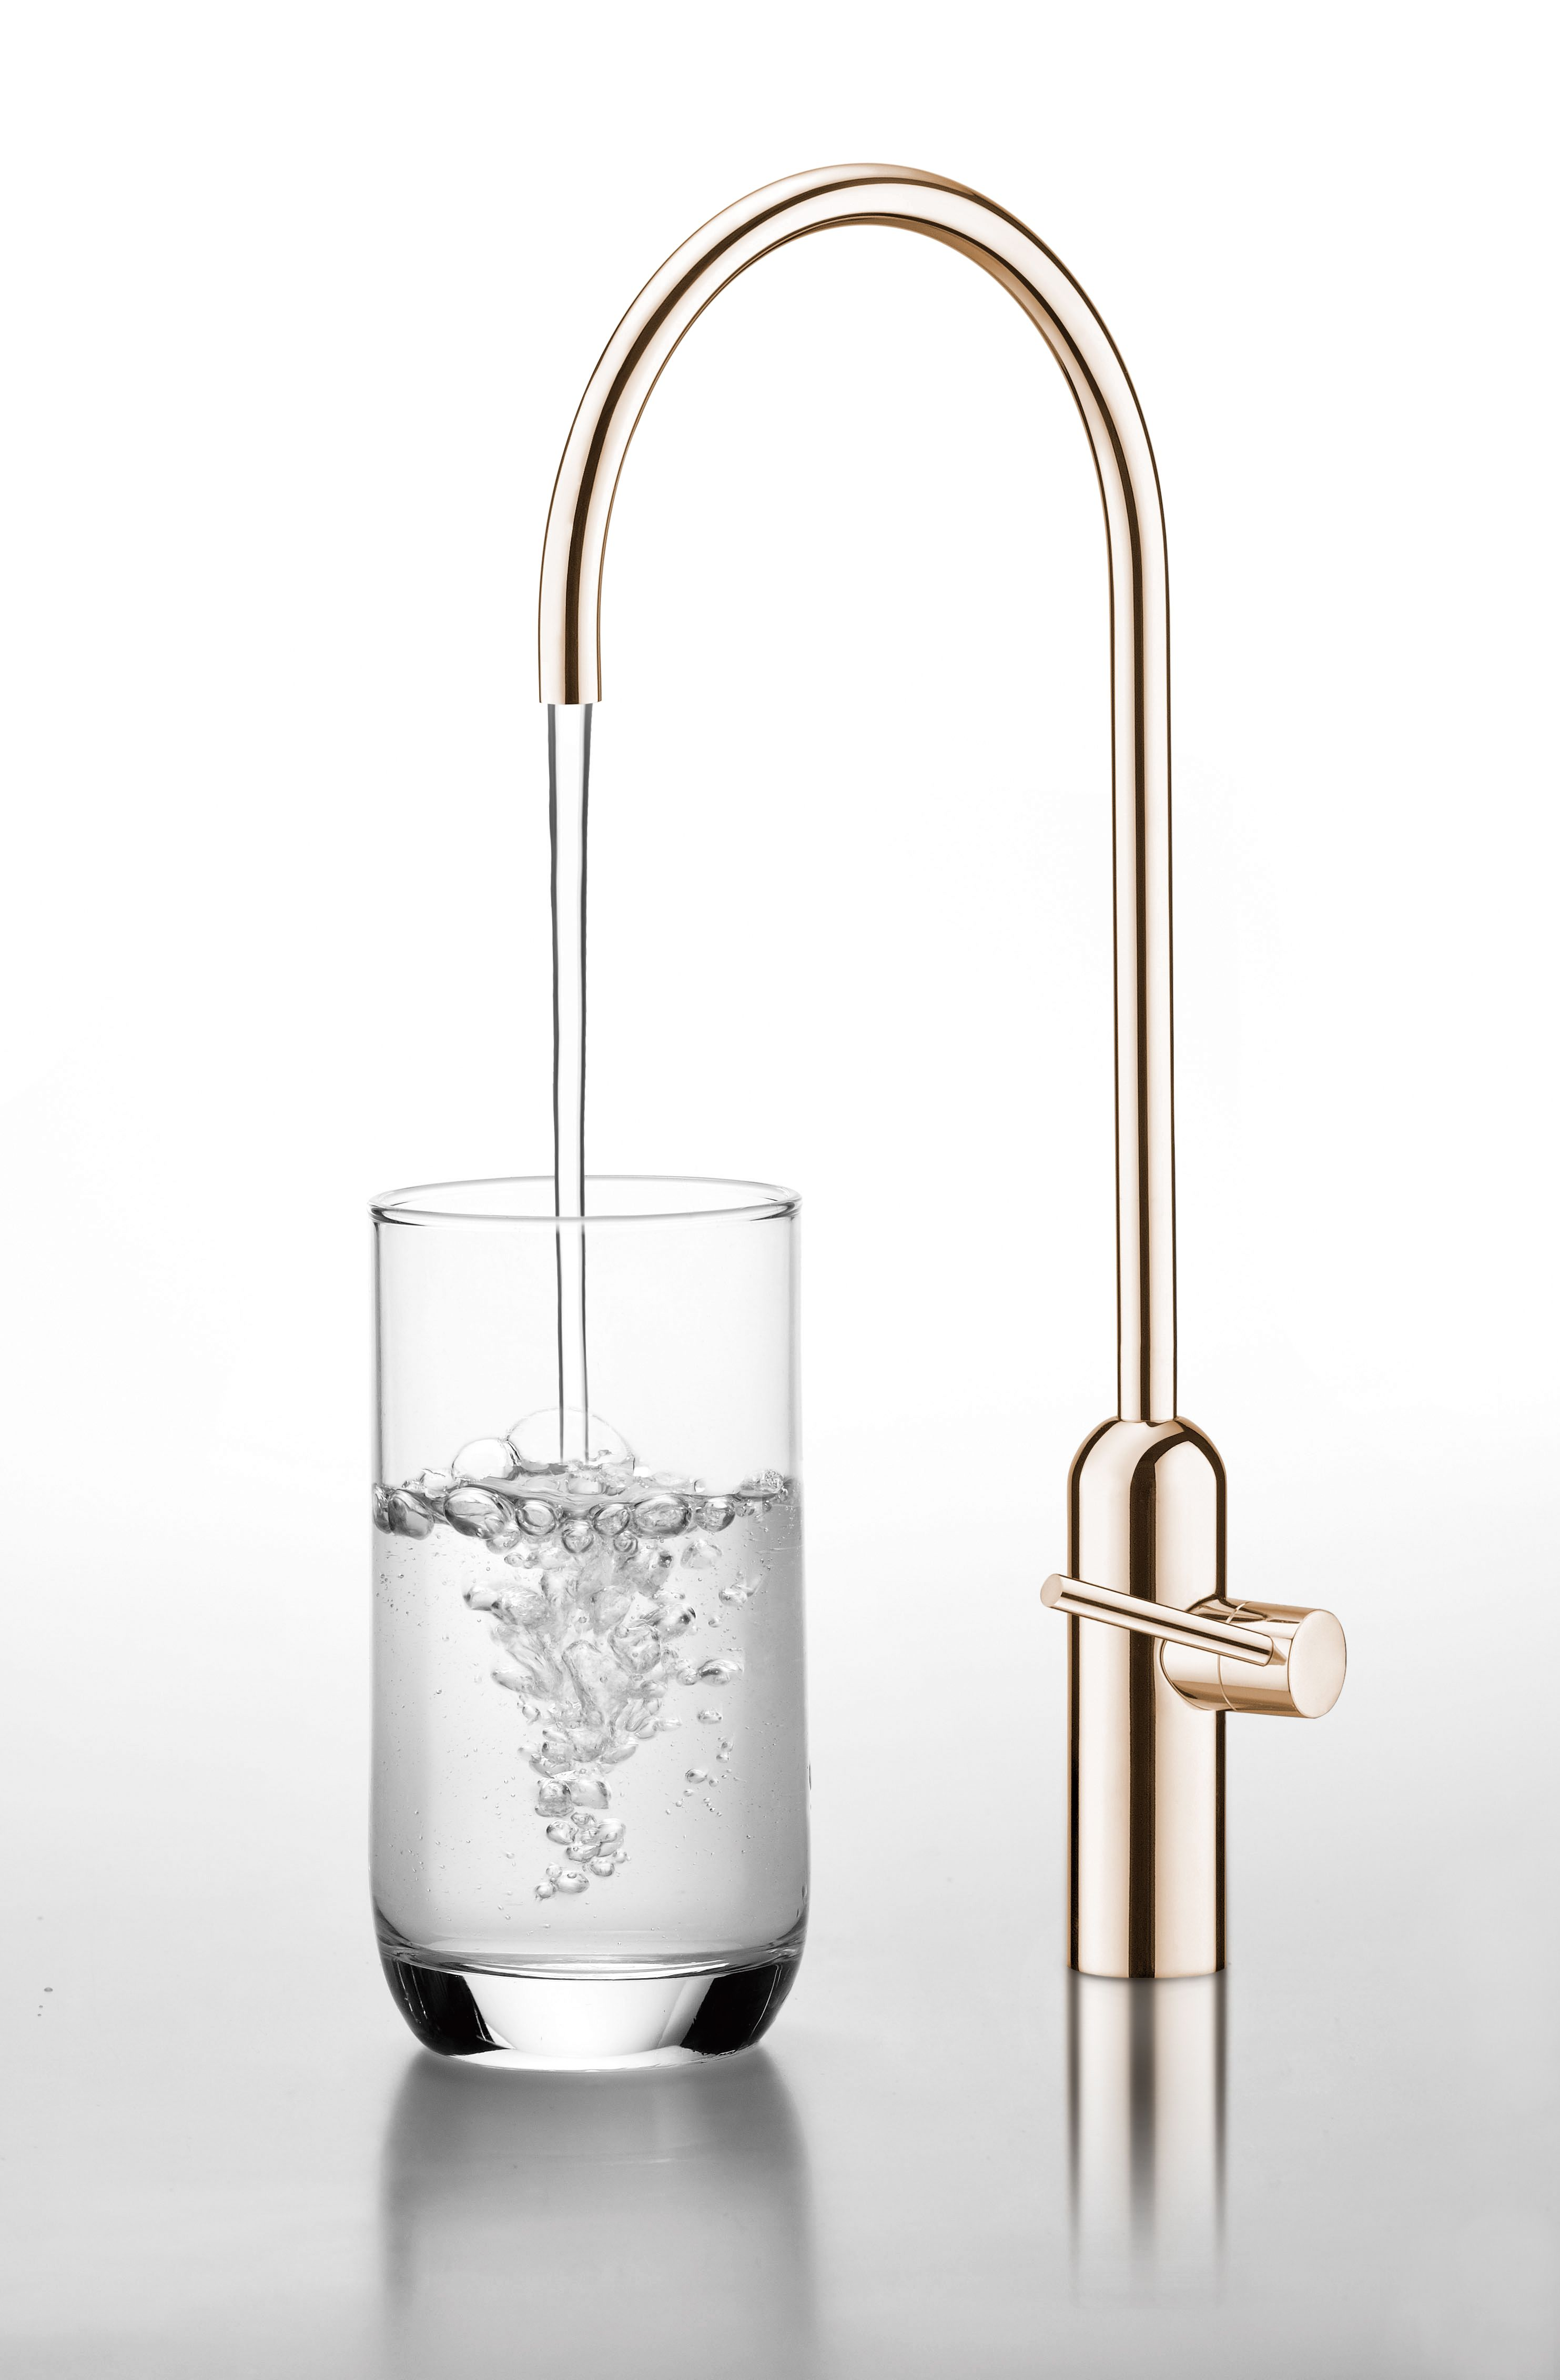 JUSTIME Capsule water drinking faucet. Made of antimicrobial copper ...